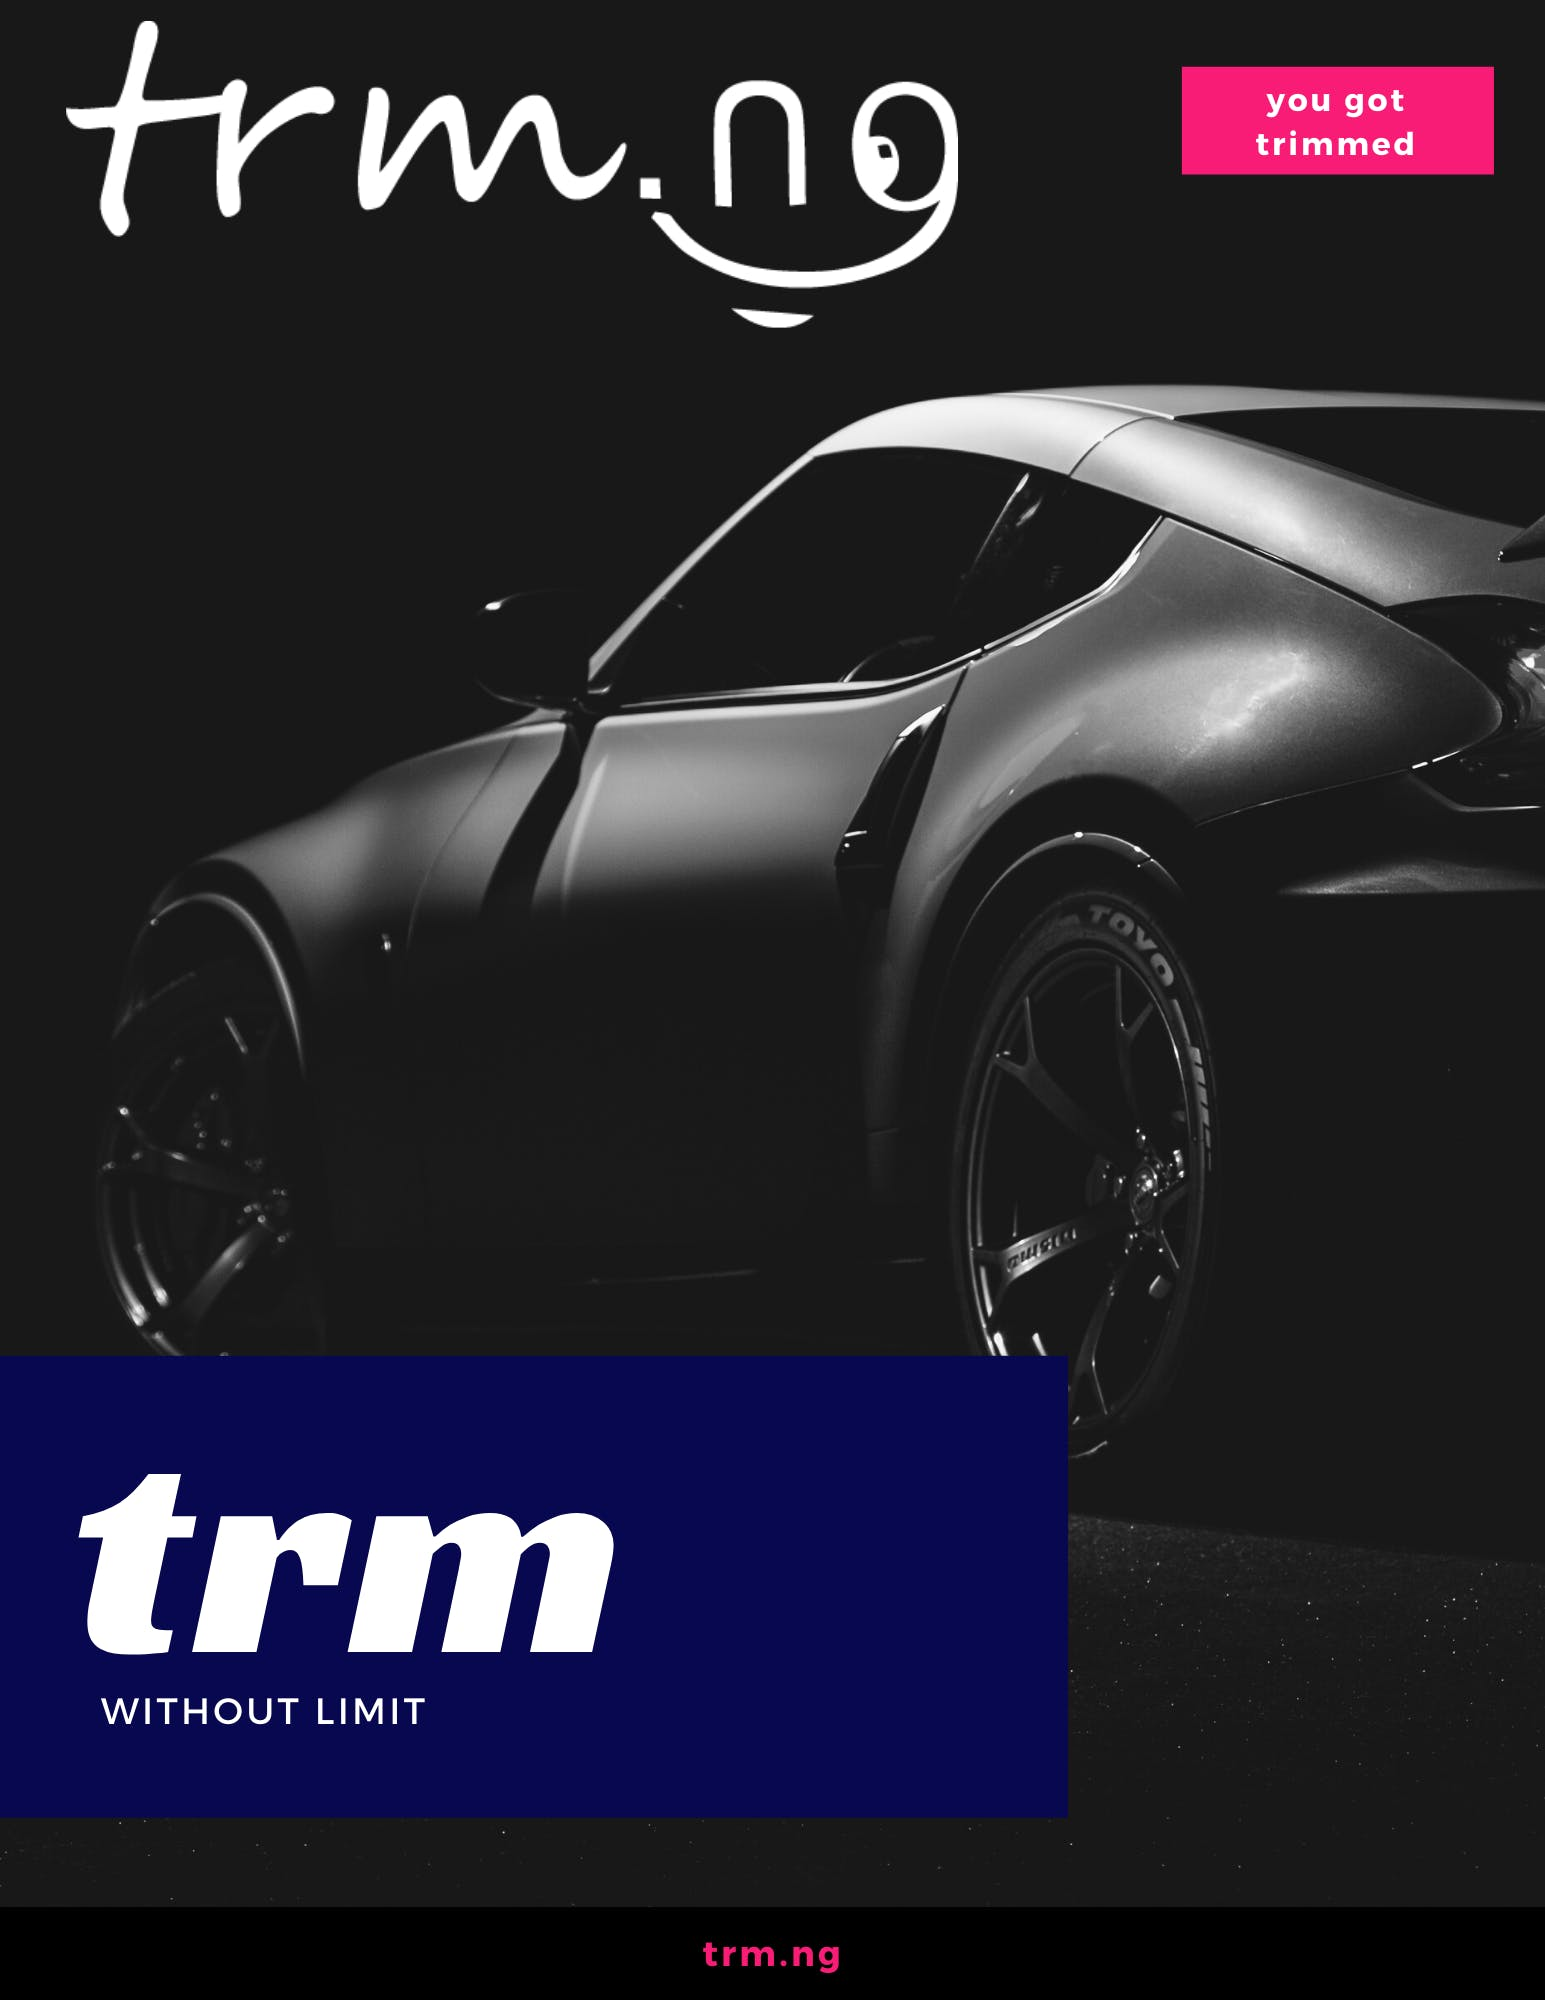 Edgy Car Magazine Cover (1).png